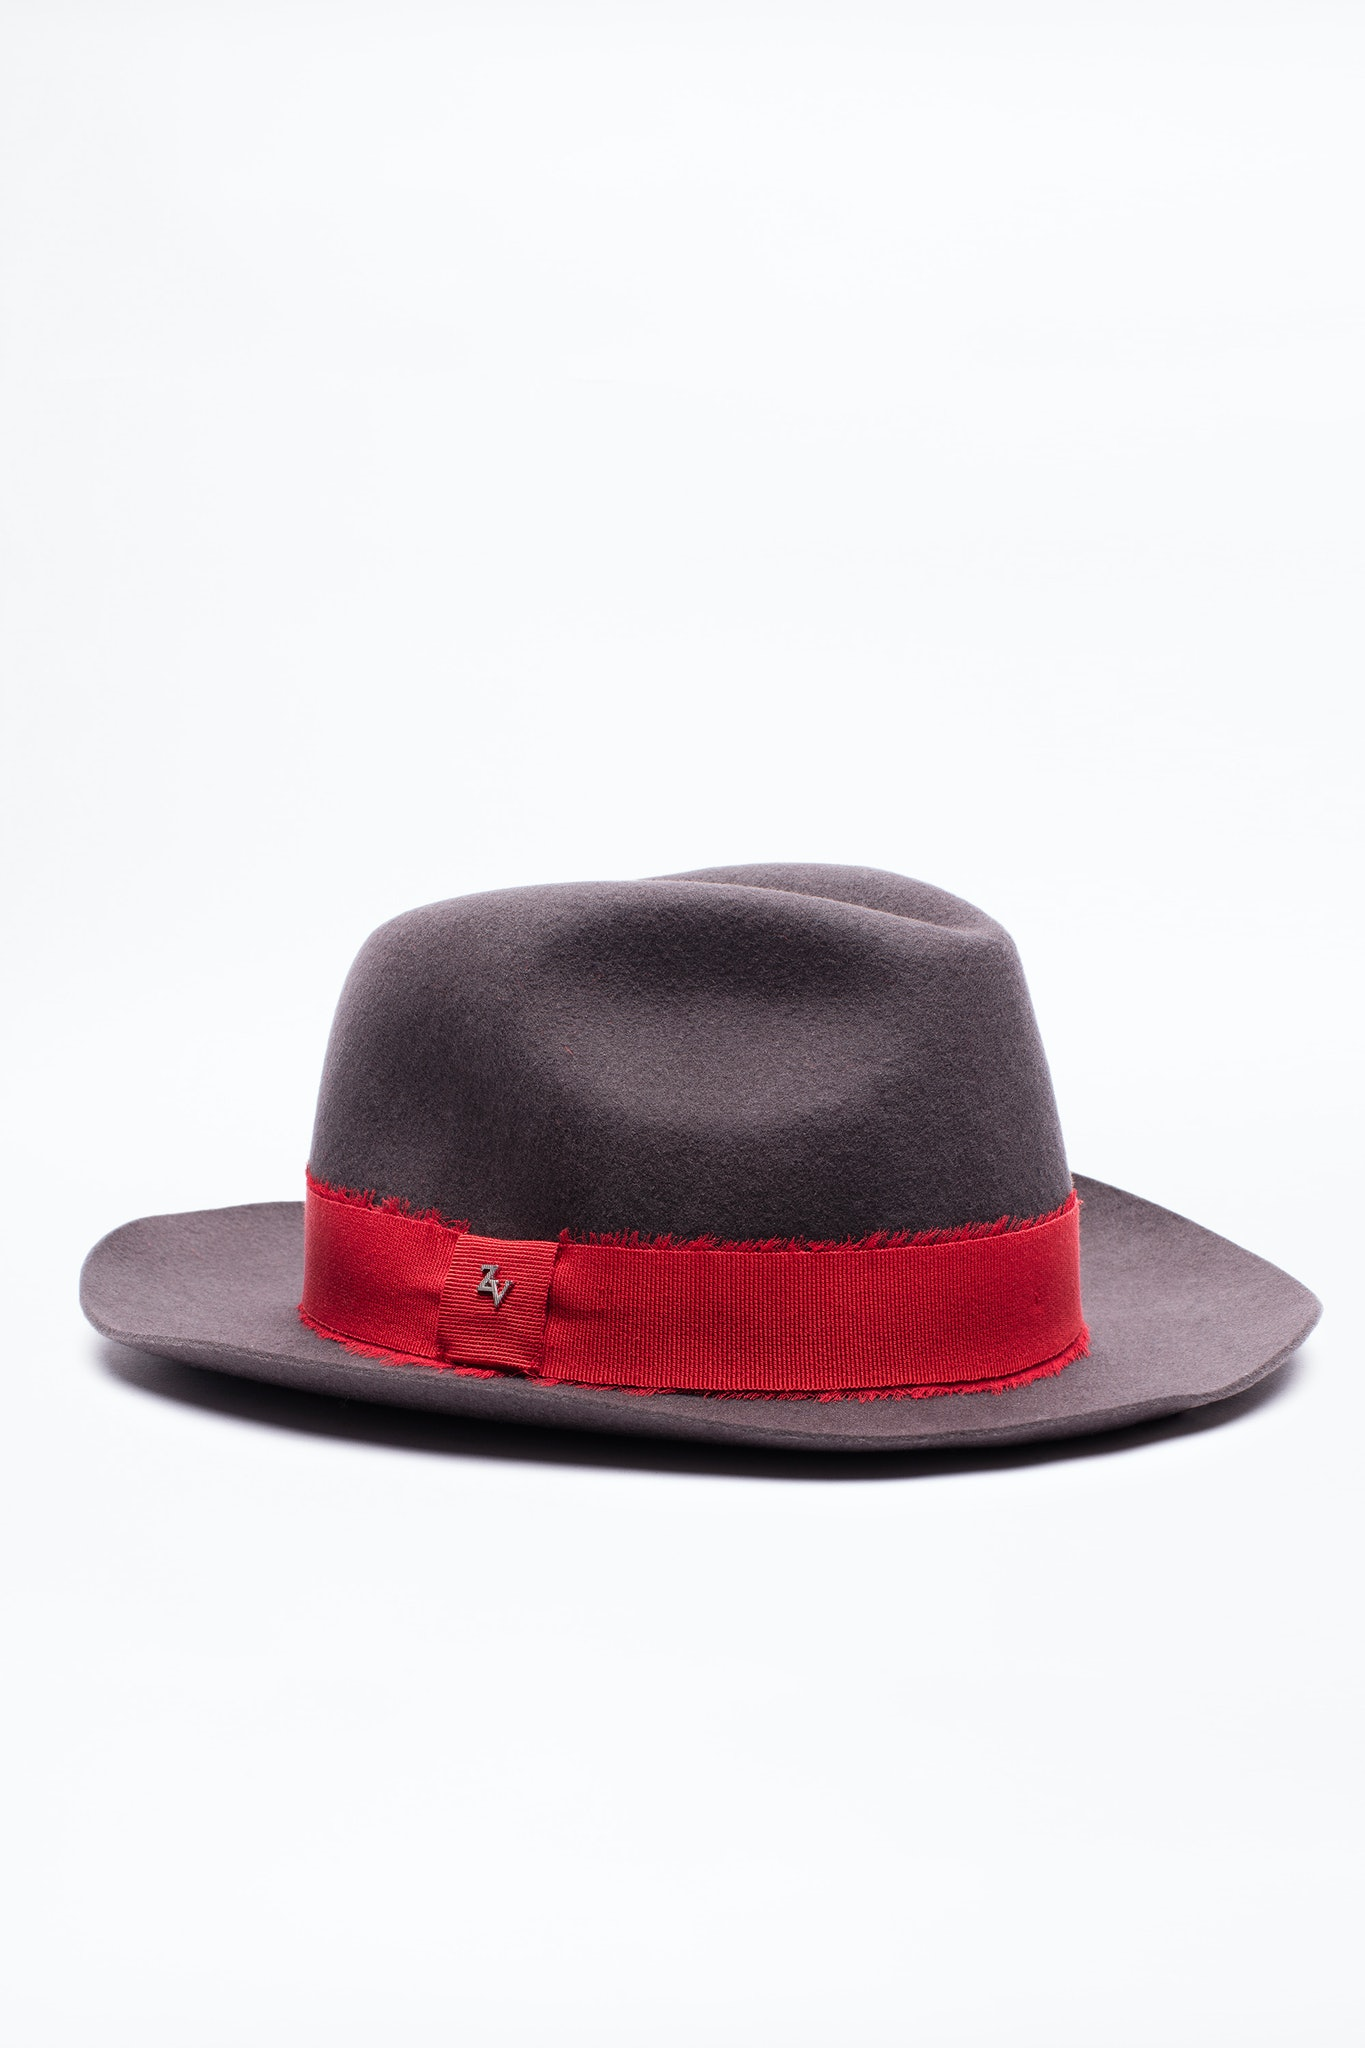 Alabama Ribbon Hat